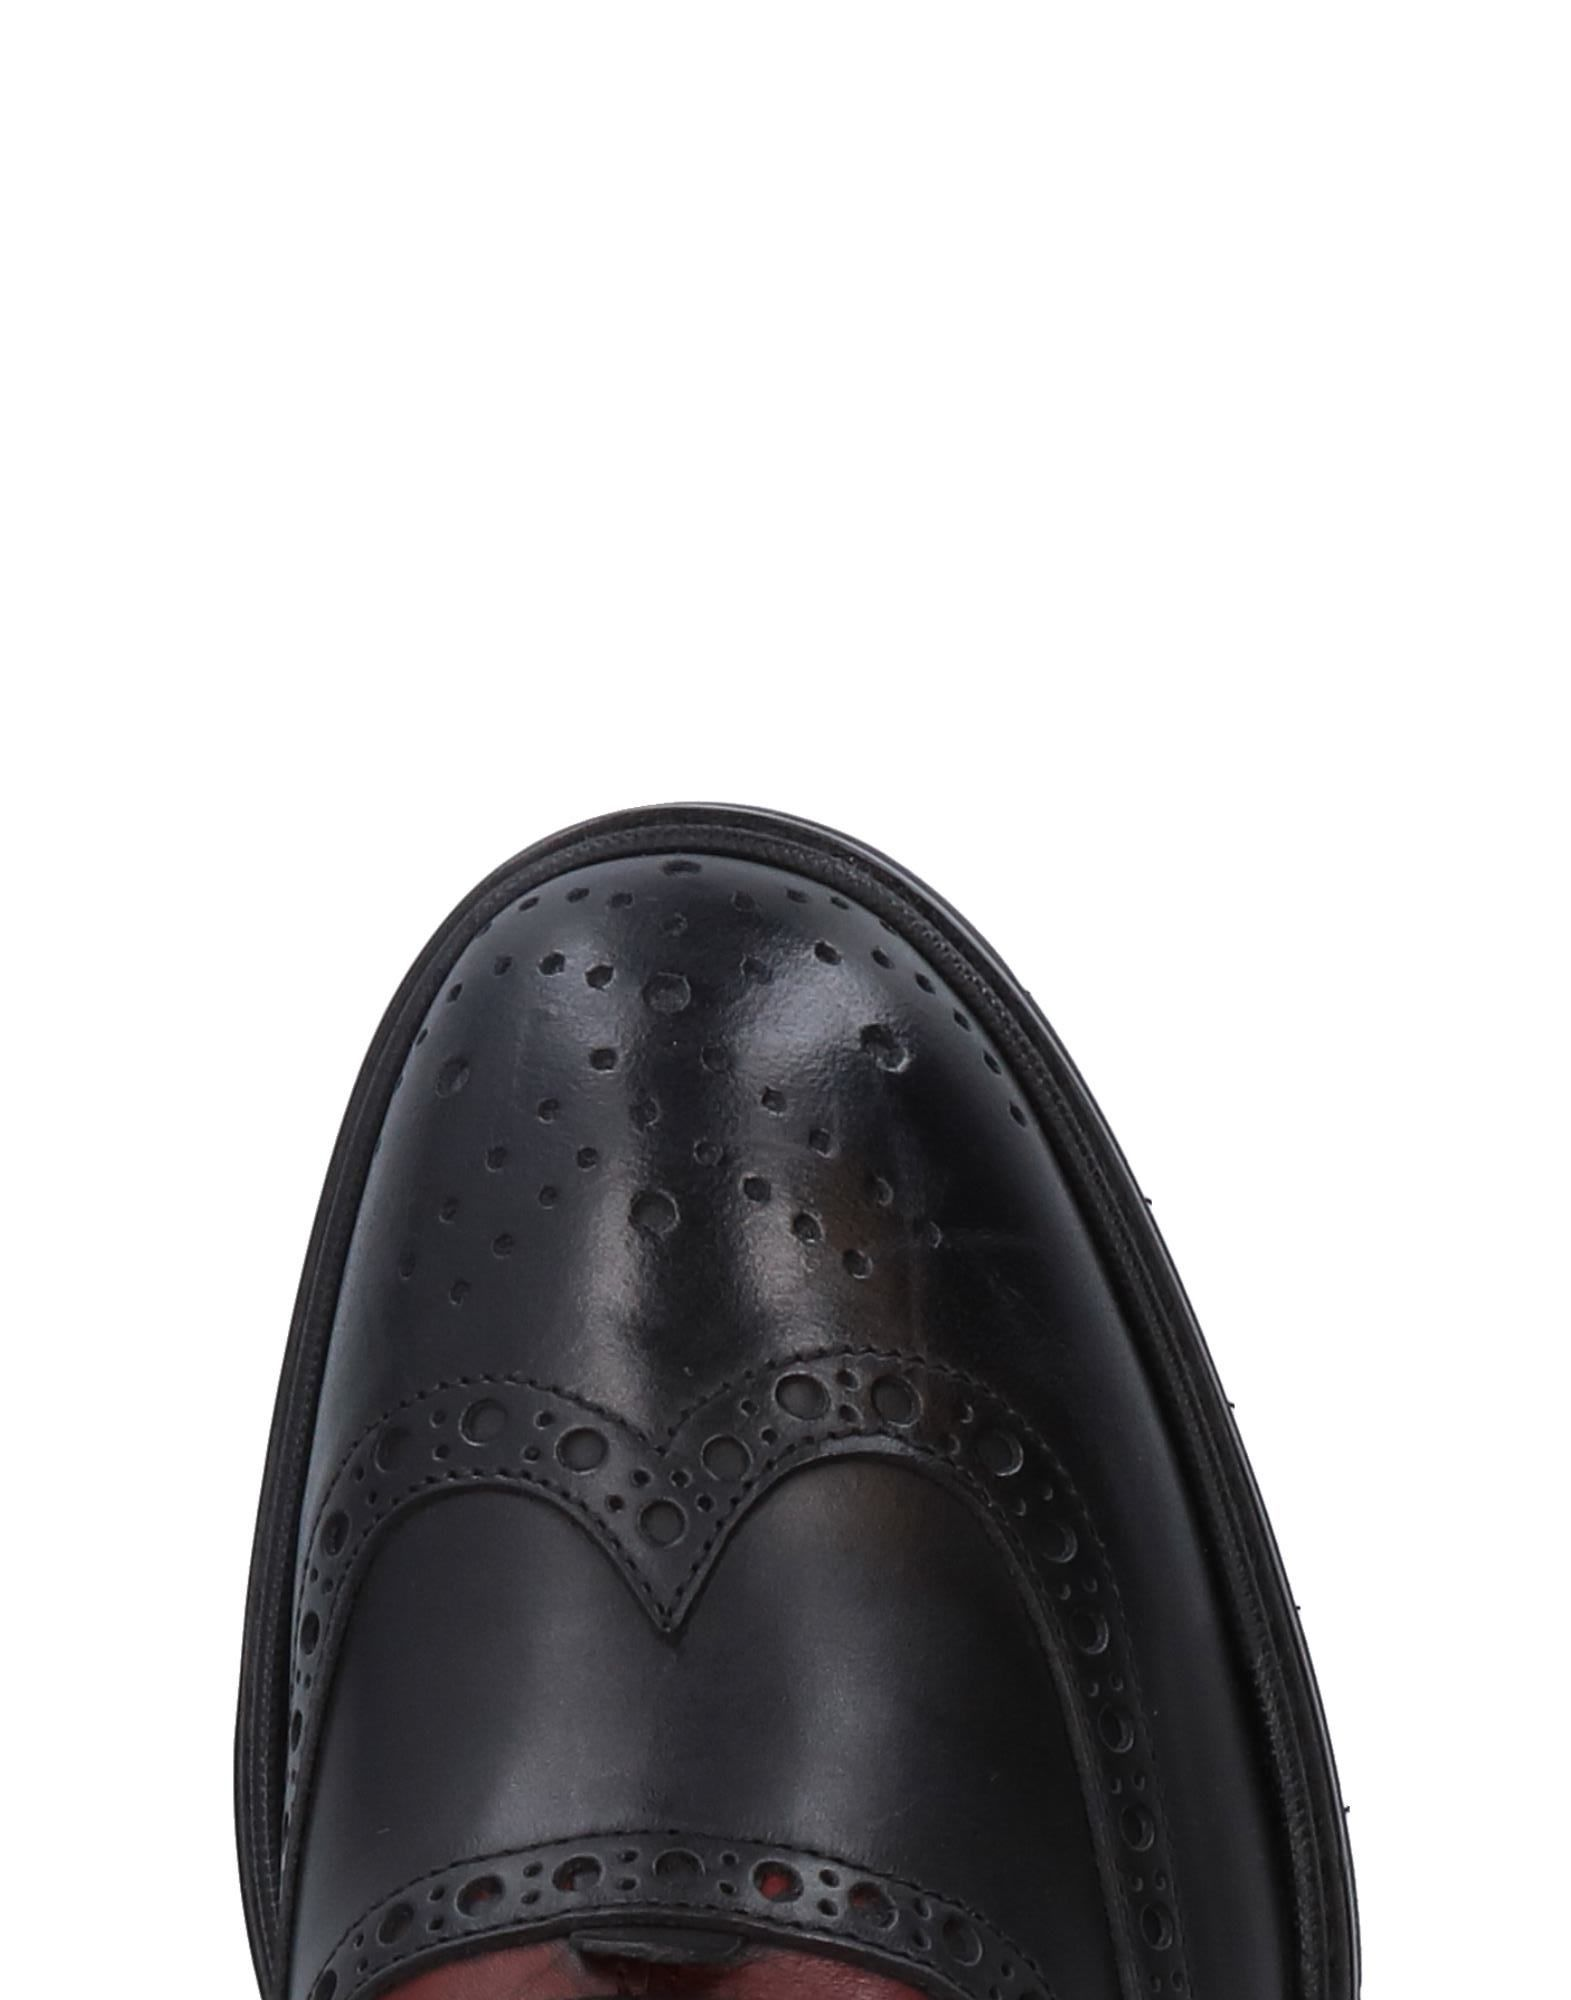 CHAUSSURES - Chaussures à lacetsLuciano Padovan e589467o